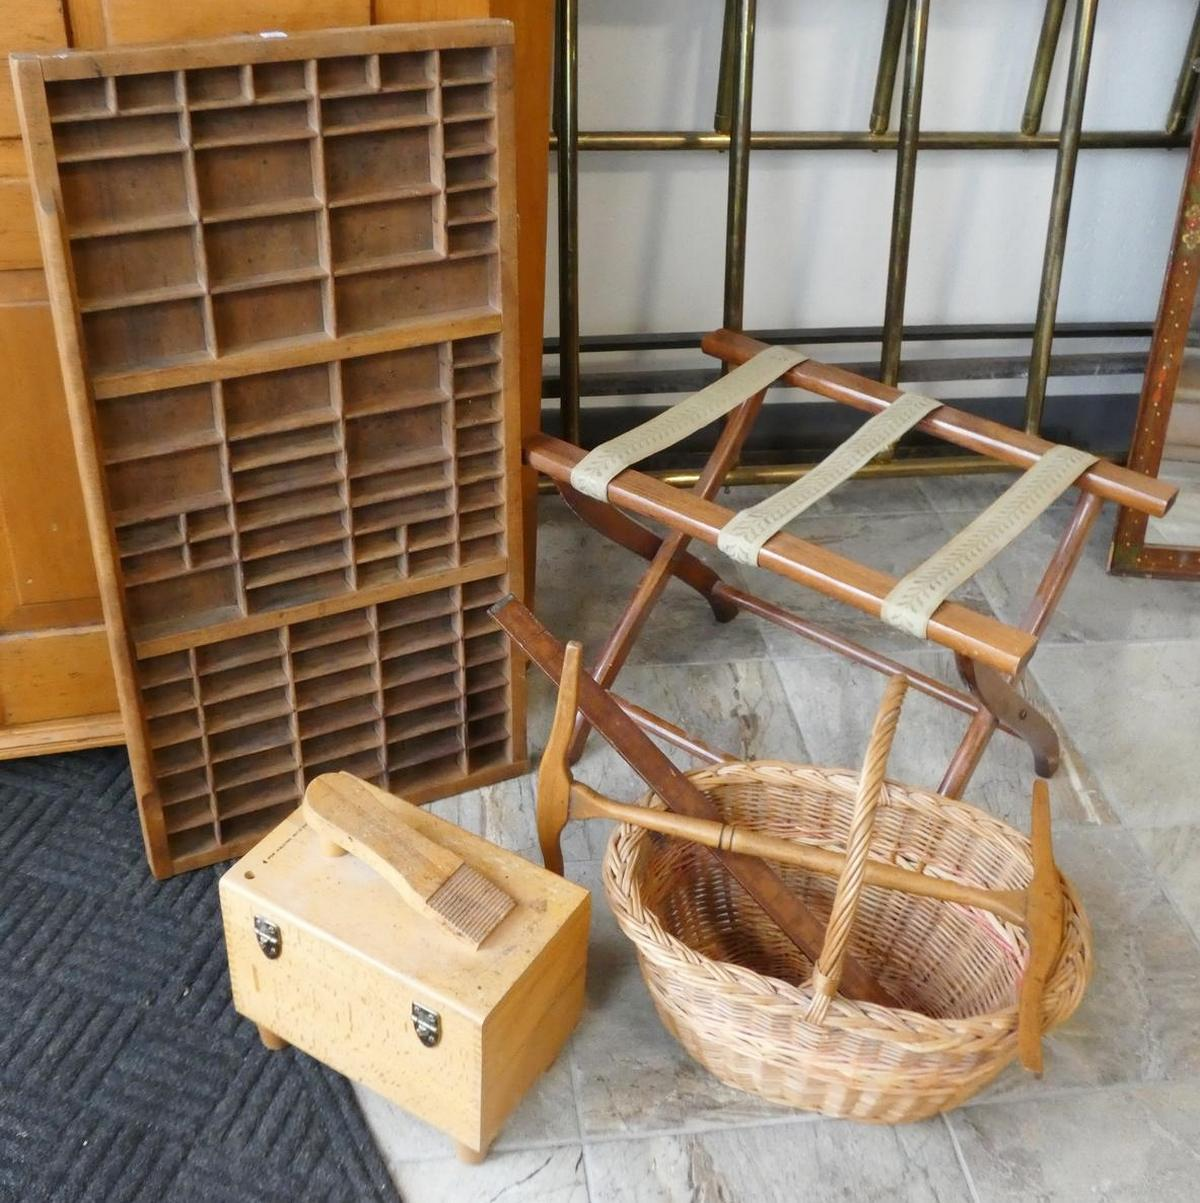 FIVE WOODEN ITEMS AND BASKET